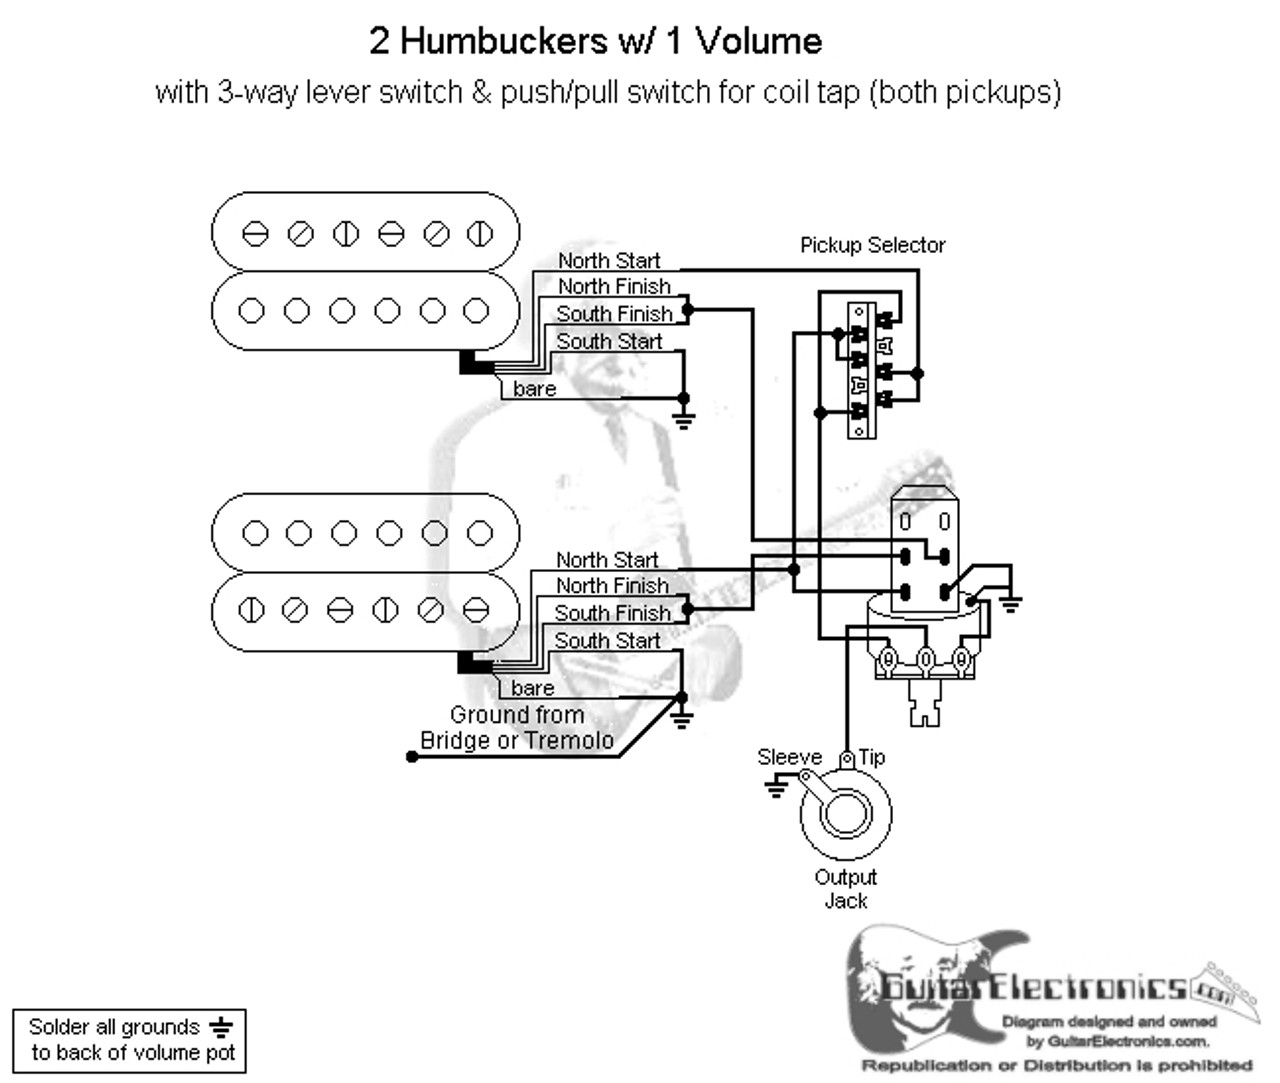 small resolution of pushpull coil tap wiring diagram 2 humbuckers 3 way lever switch 1